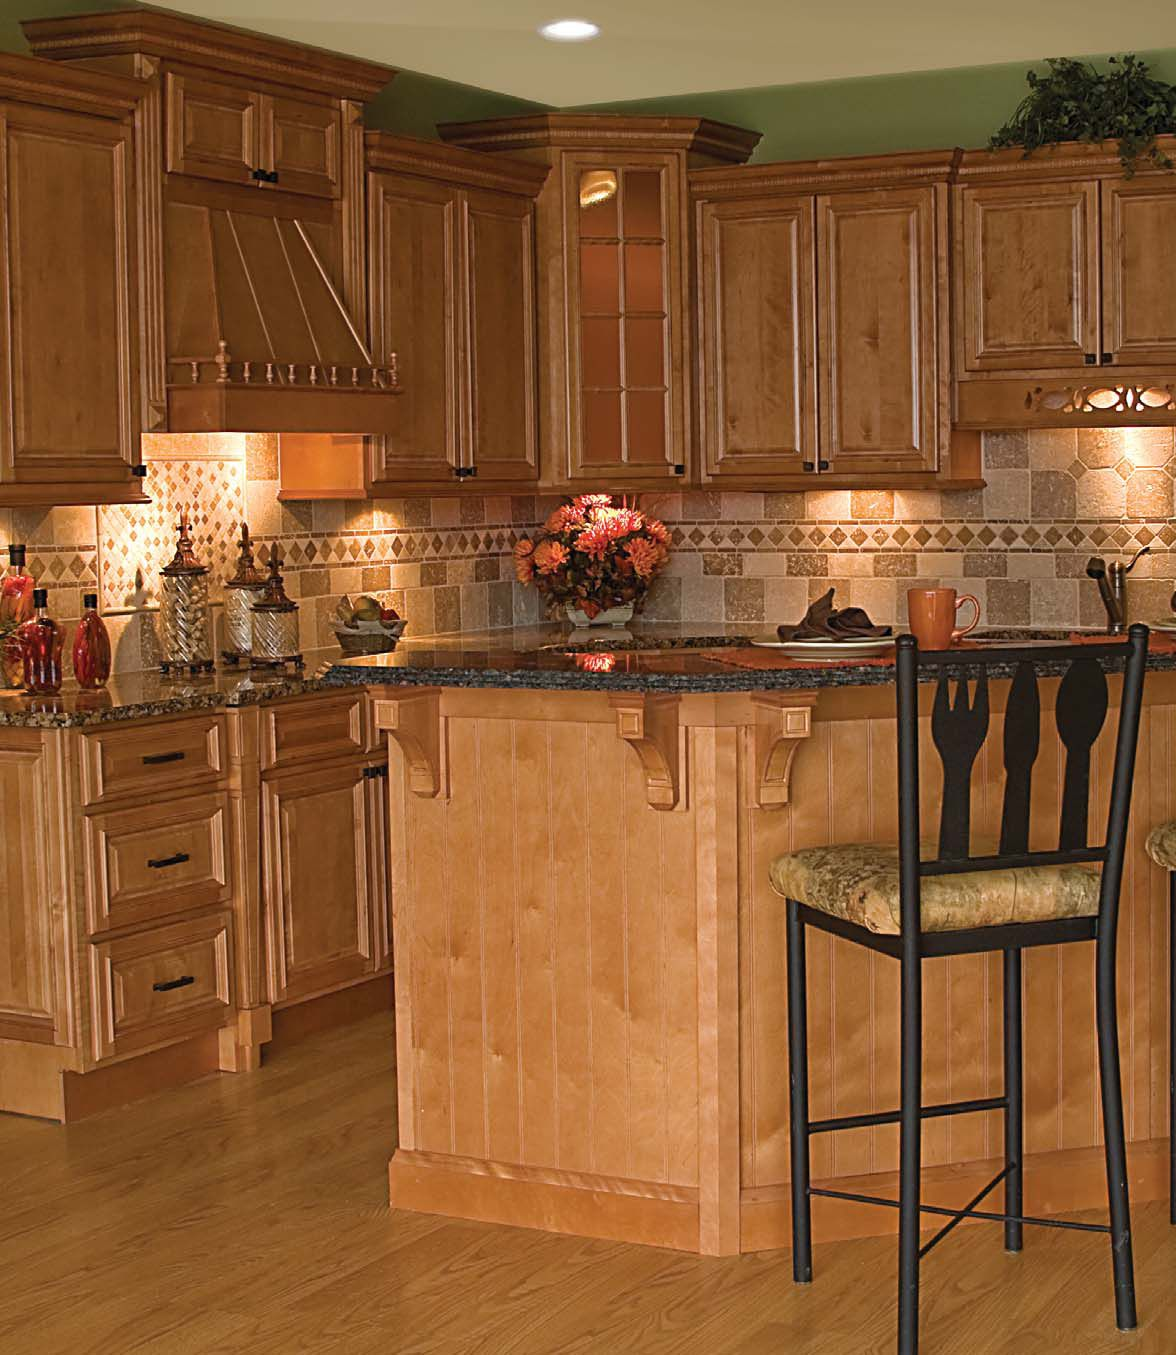 New Jersey Kitchen Cabinets Oak Cabinets And Granite Kitchens Pinterest A Line